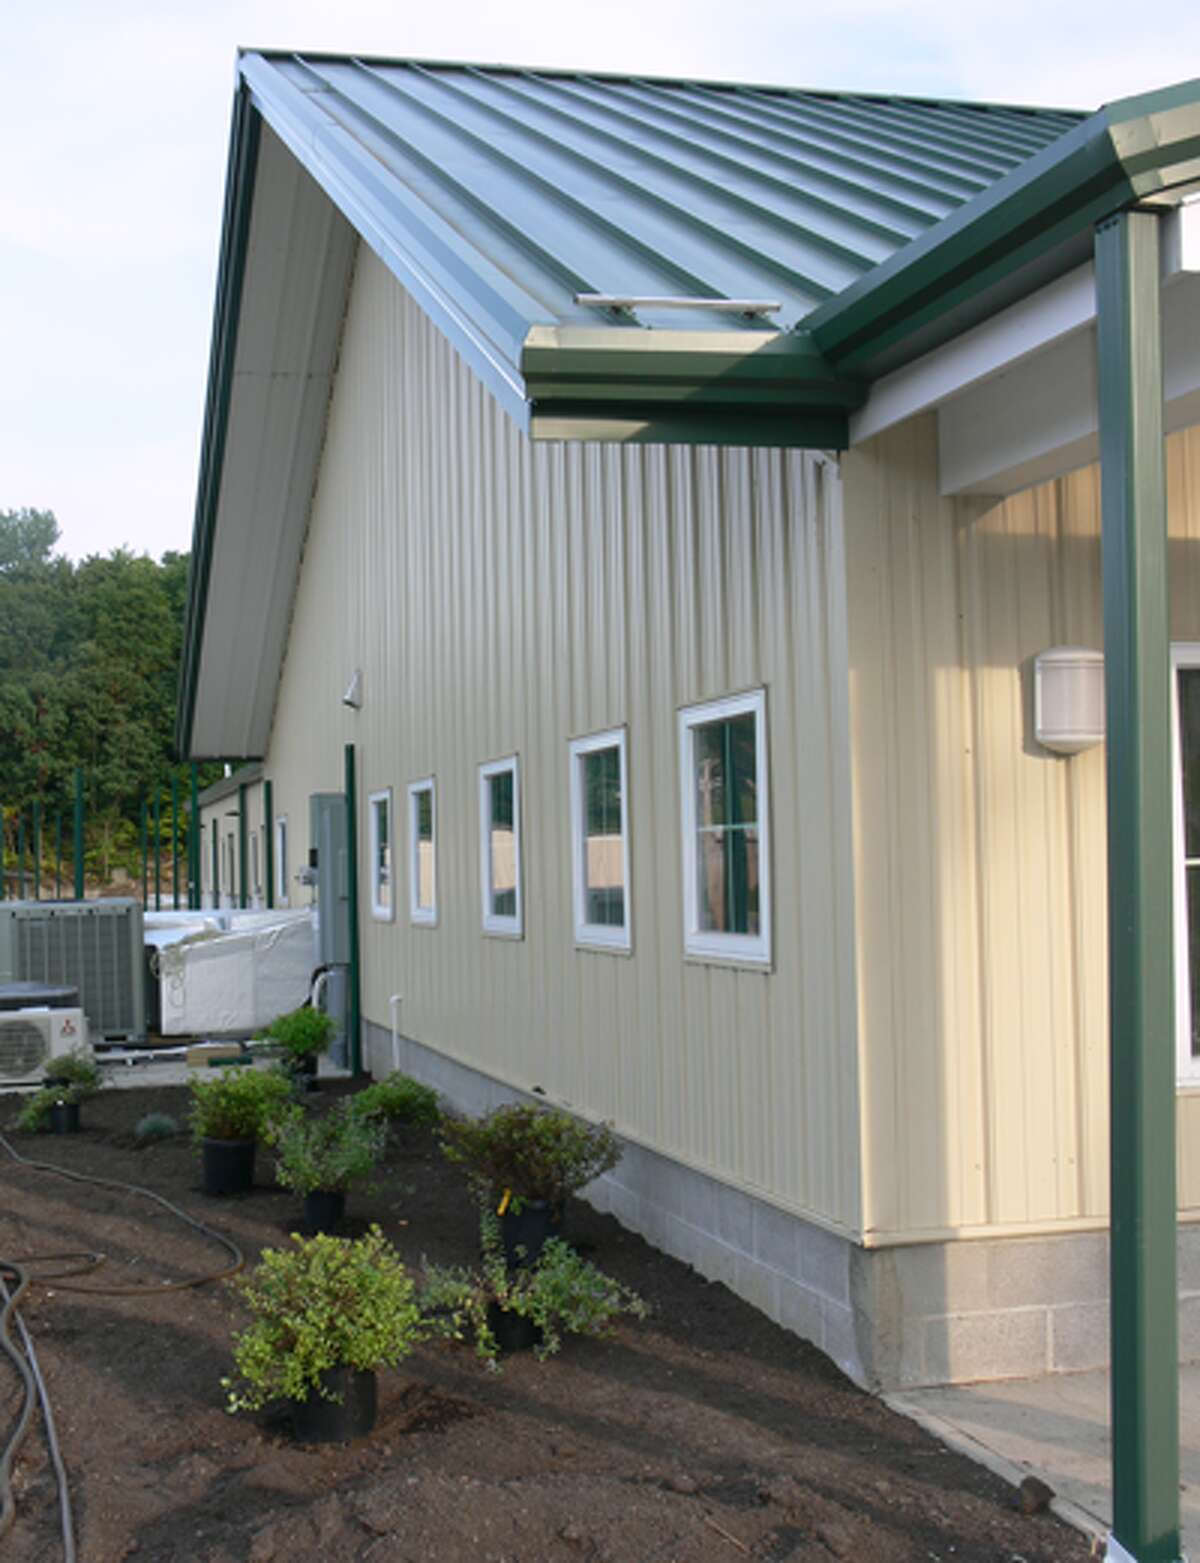 A side view of the animal shelter building.